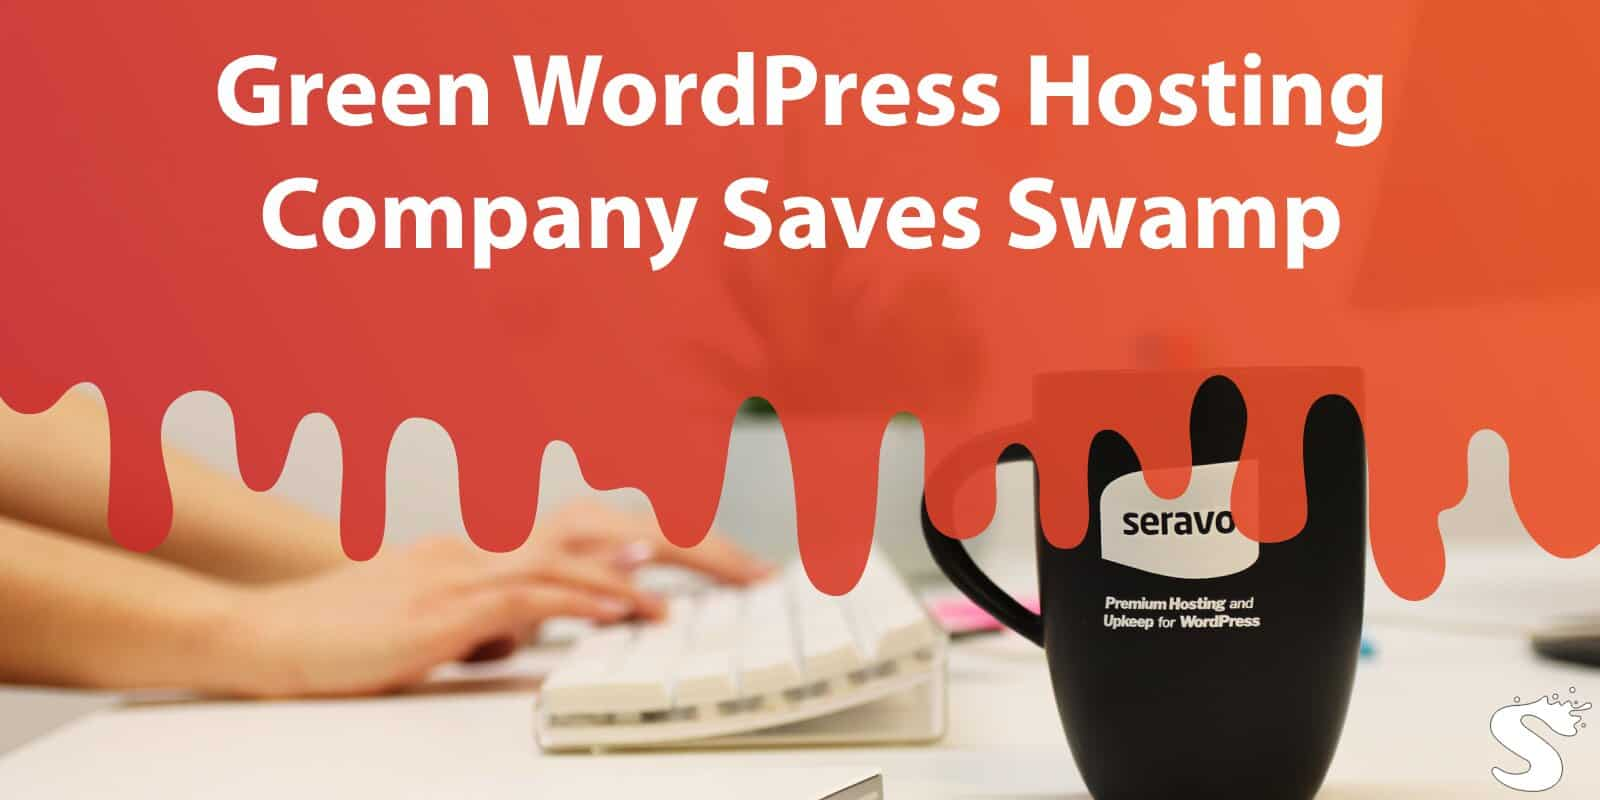 Green Wordpress Hosting Company Saves Swamp